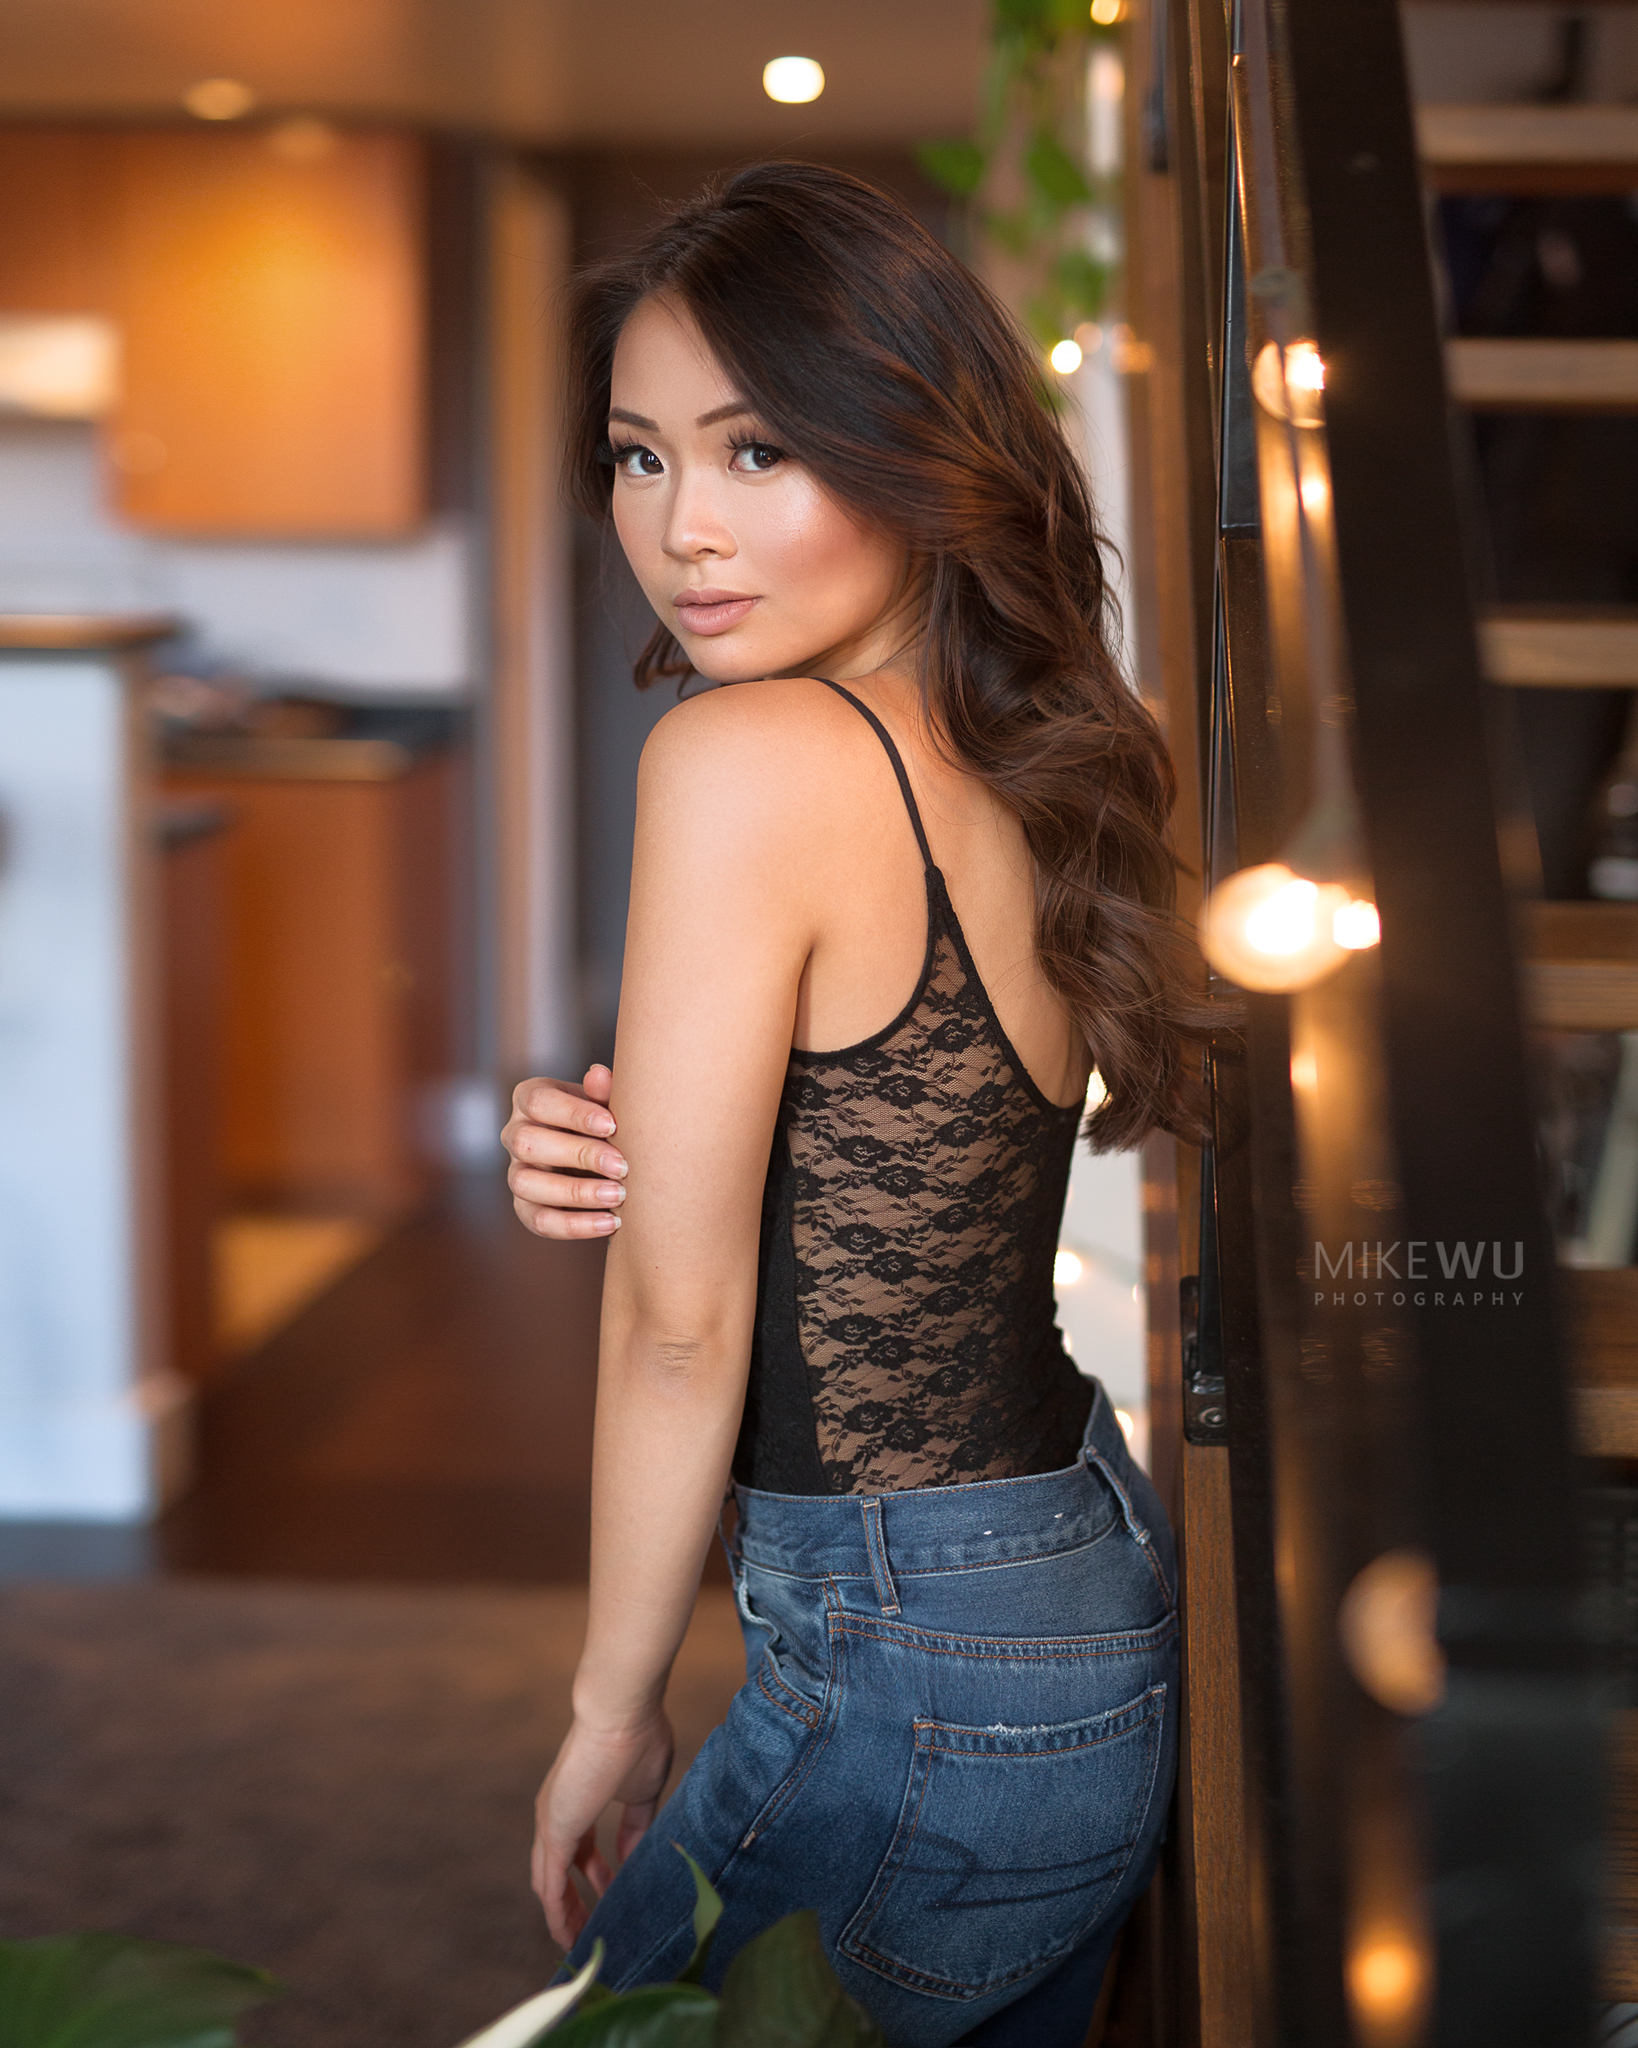 vancouver portrait photographer mike wu indoor studio photography asian light stairs standing model hairstyle makeup beauty celinelikedion photoshoot